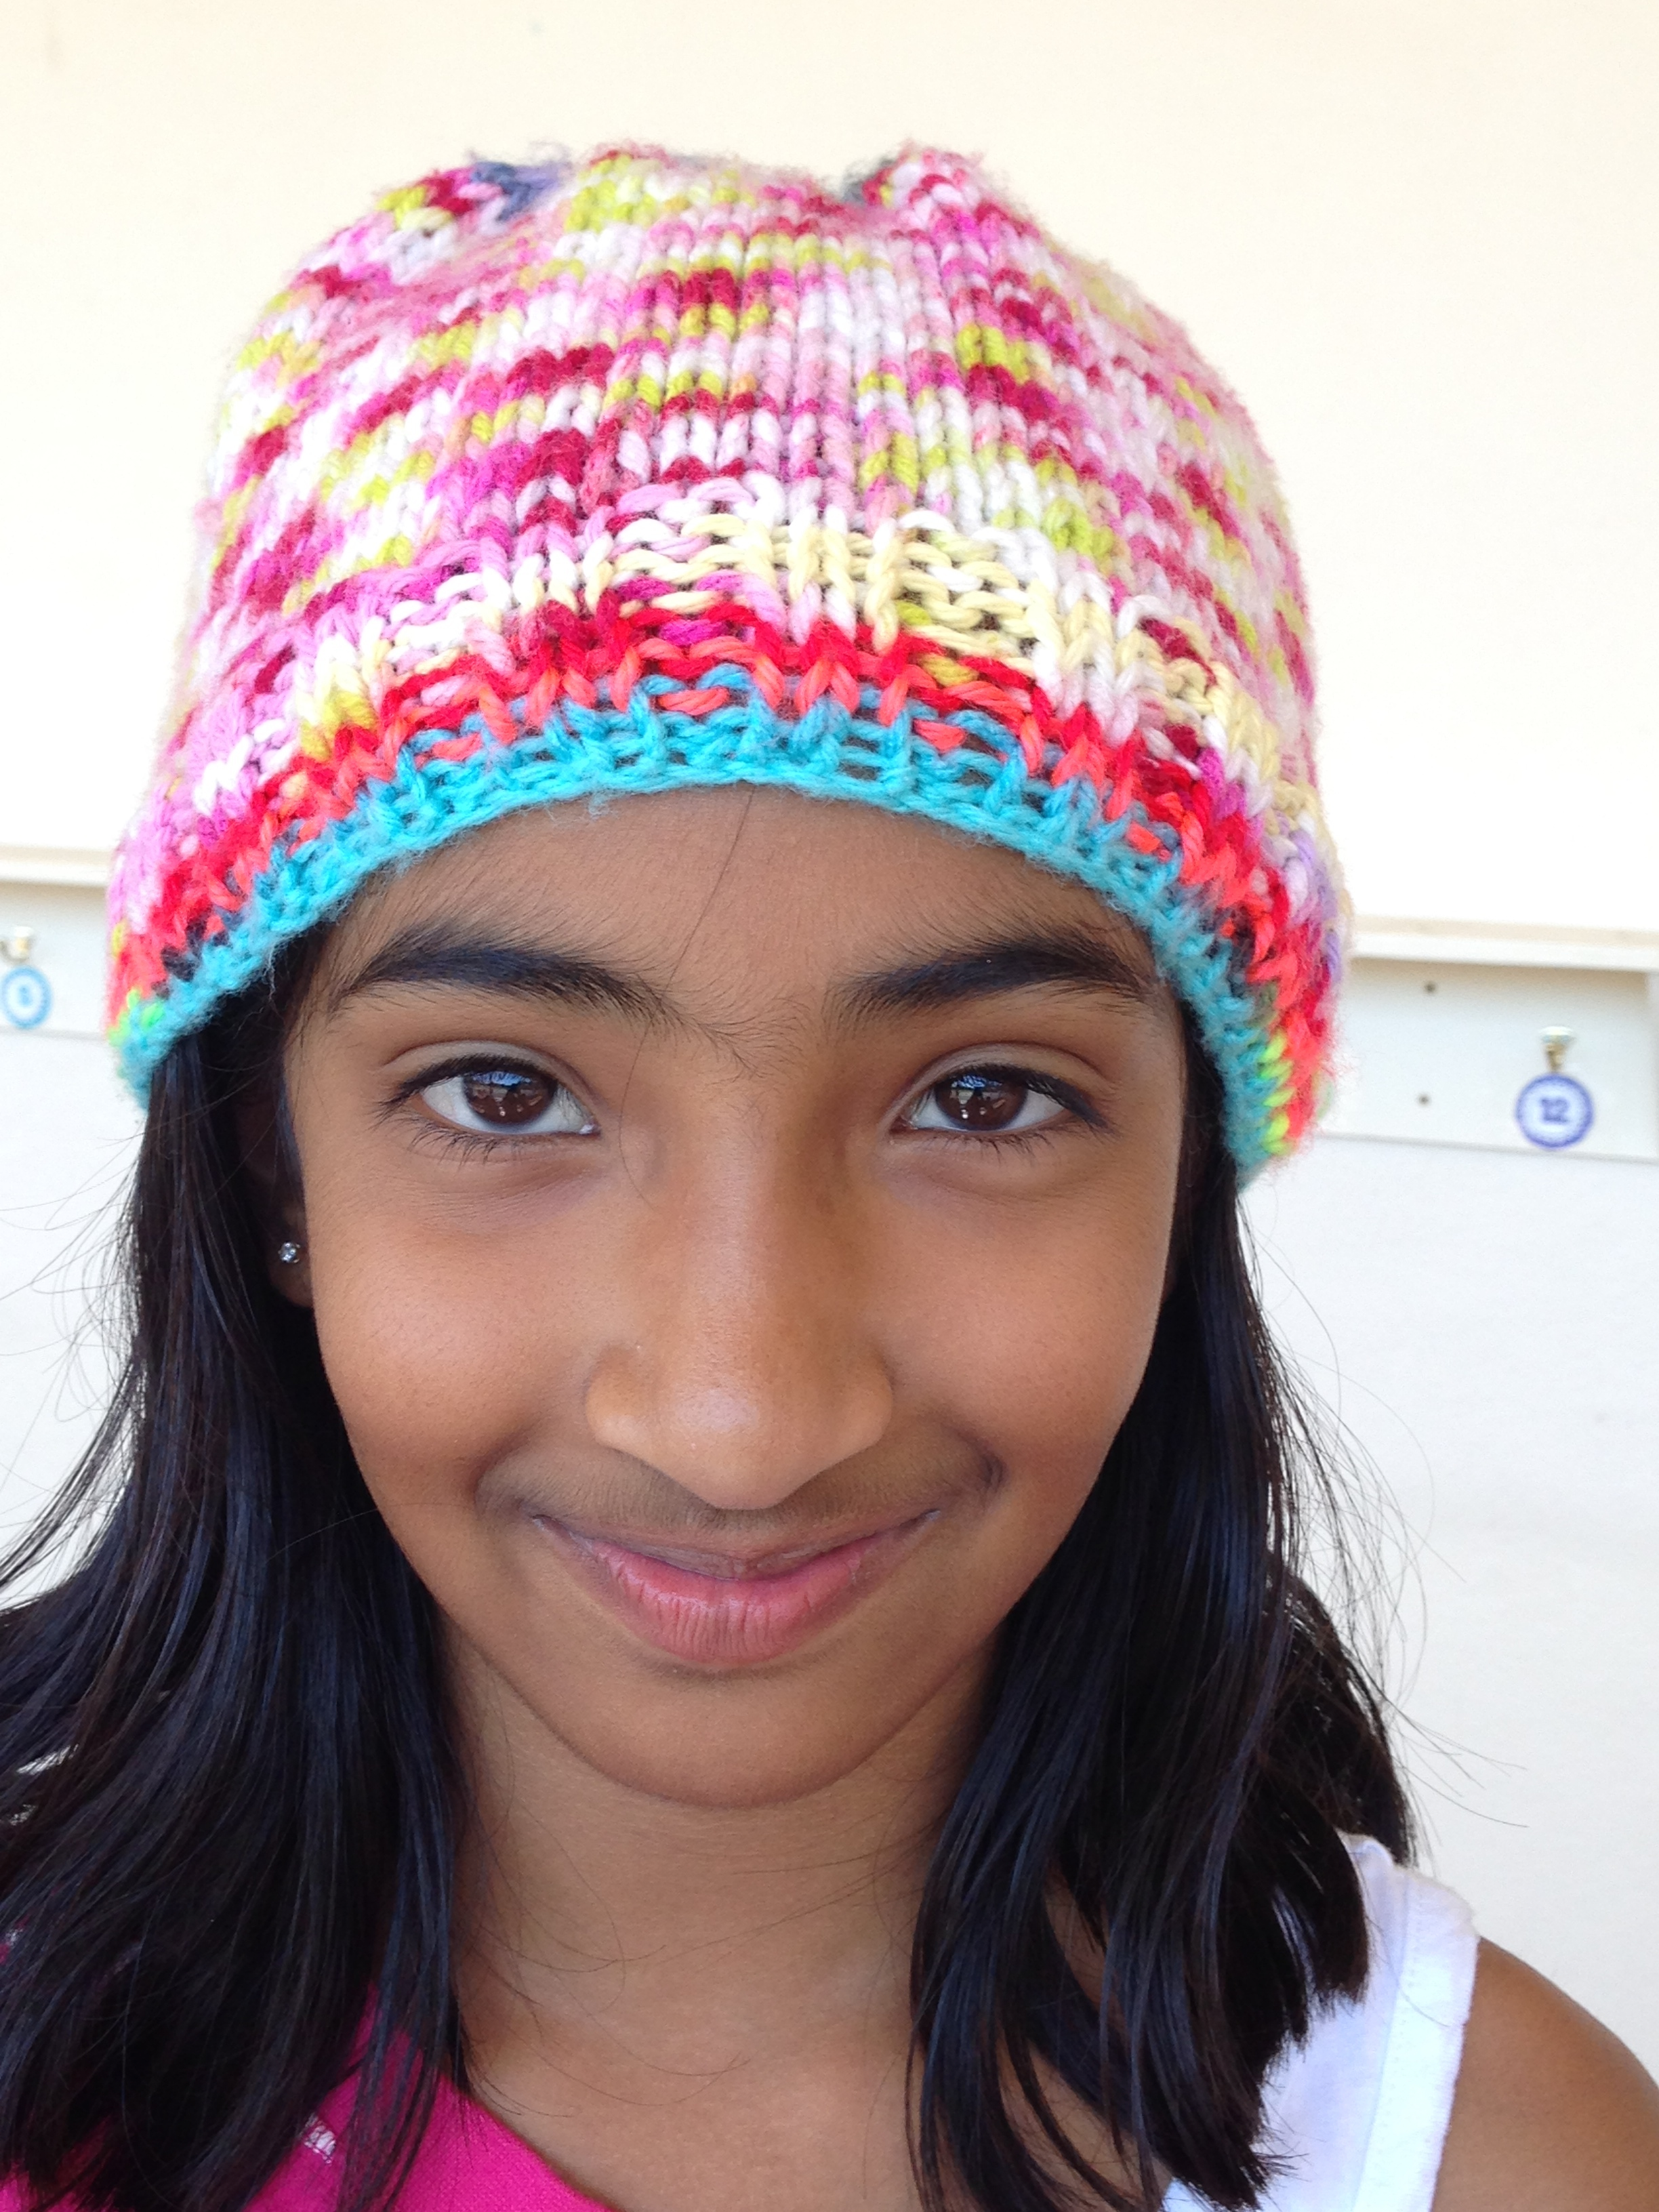 4th grader hat knit in the round.